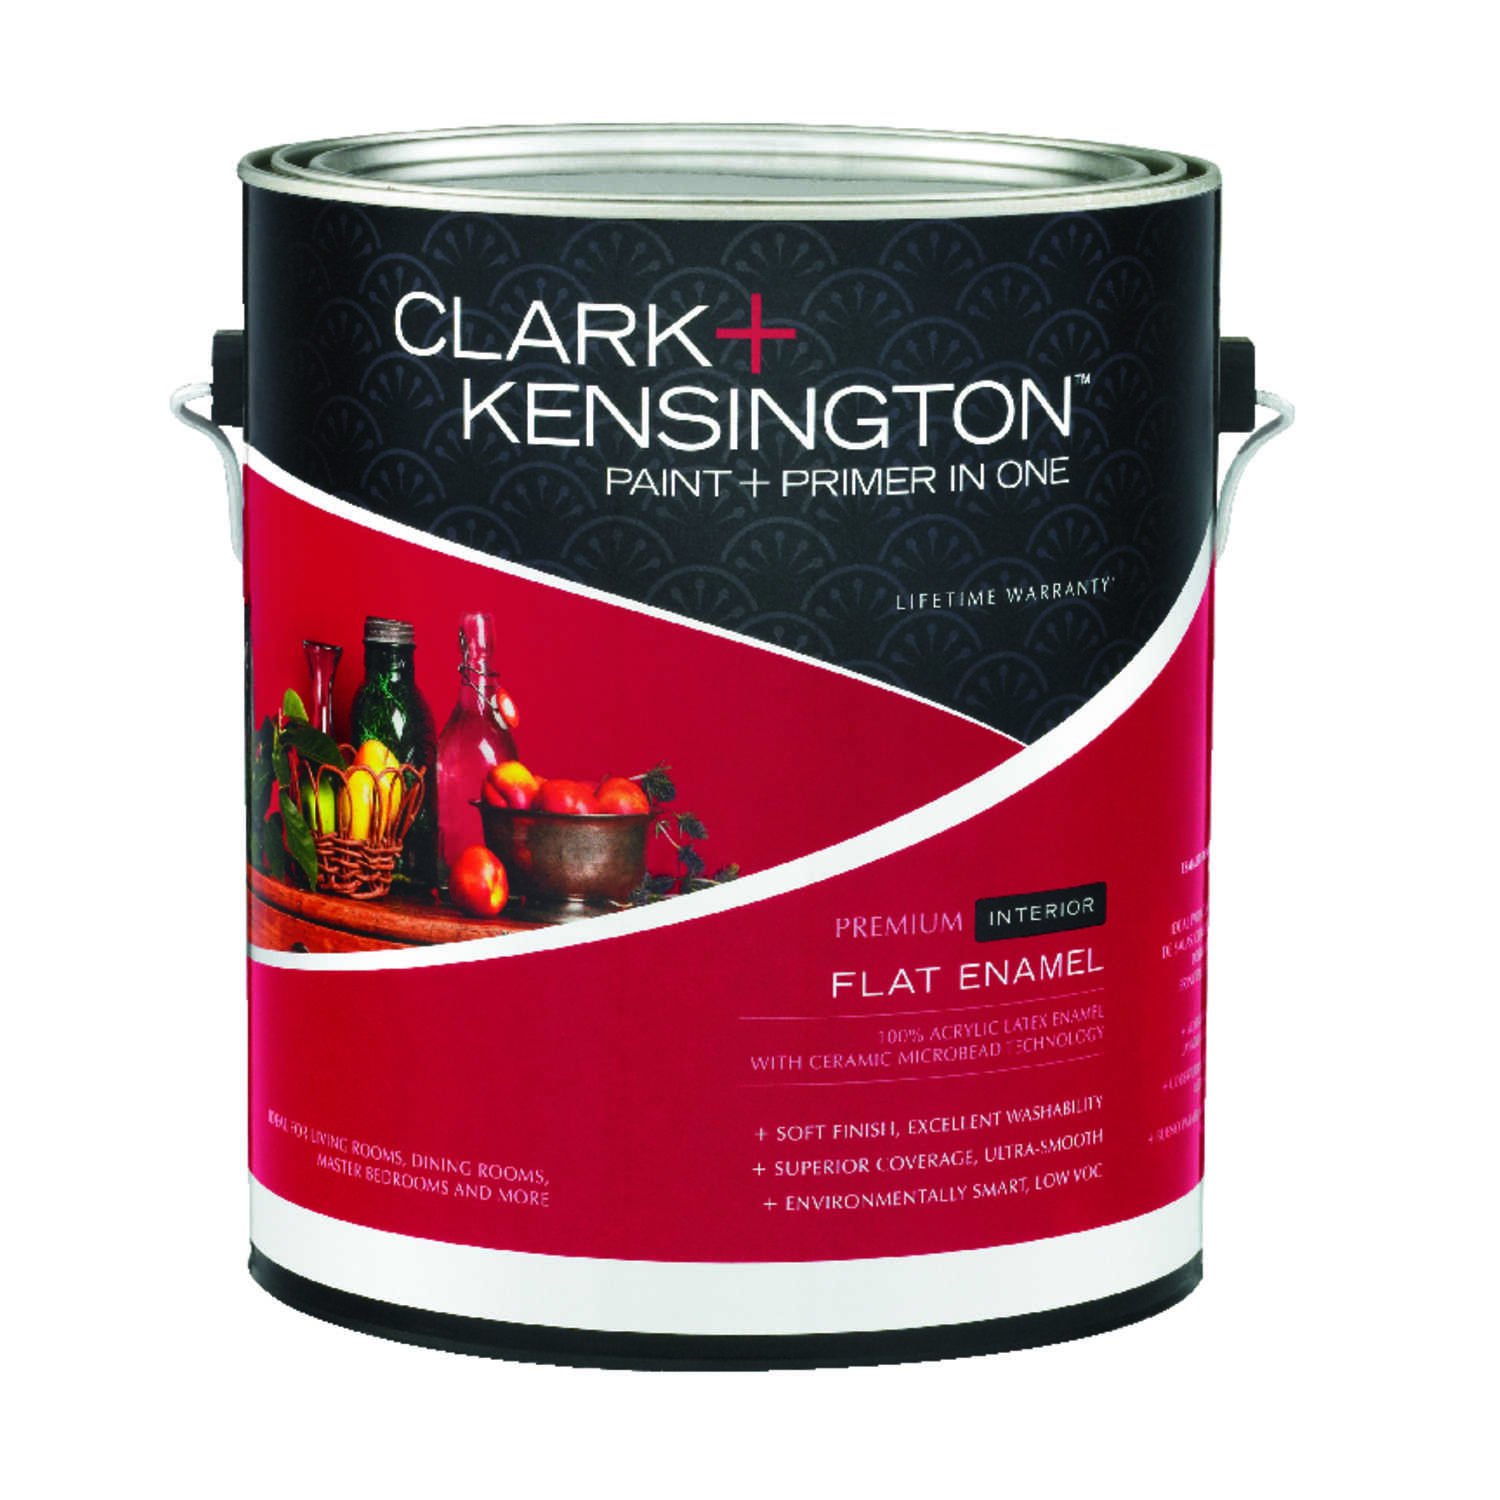 Clark kensington flat enamel designer white acrylic latex paint and primer 1